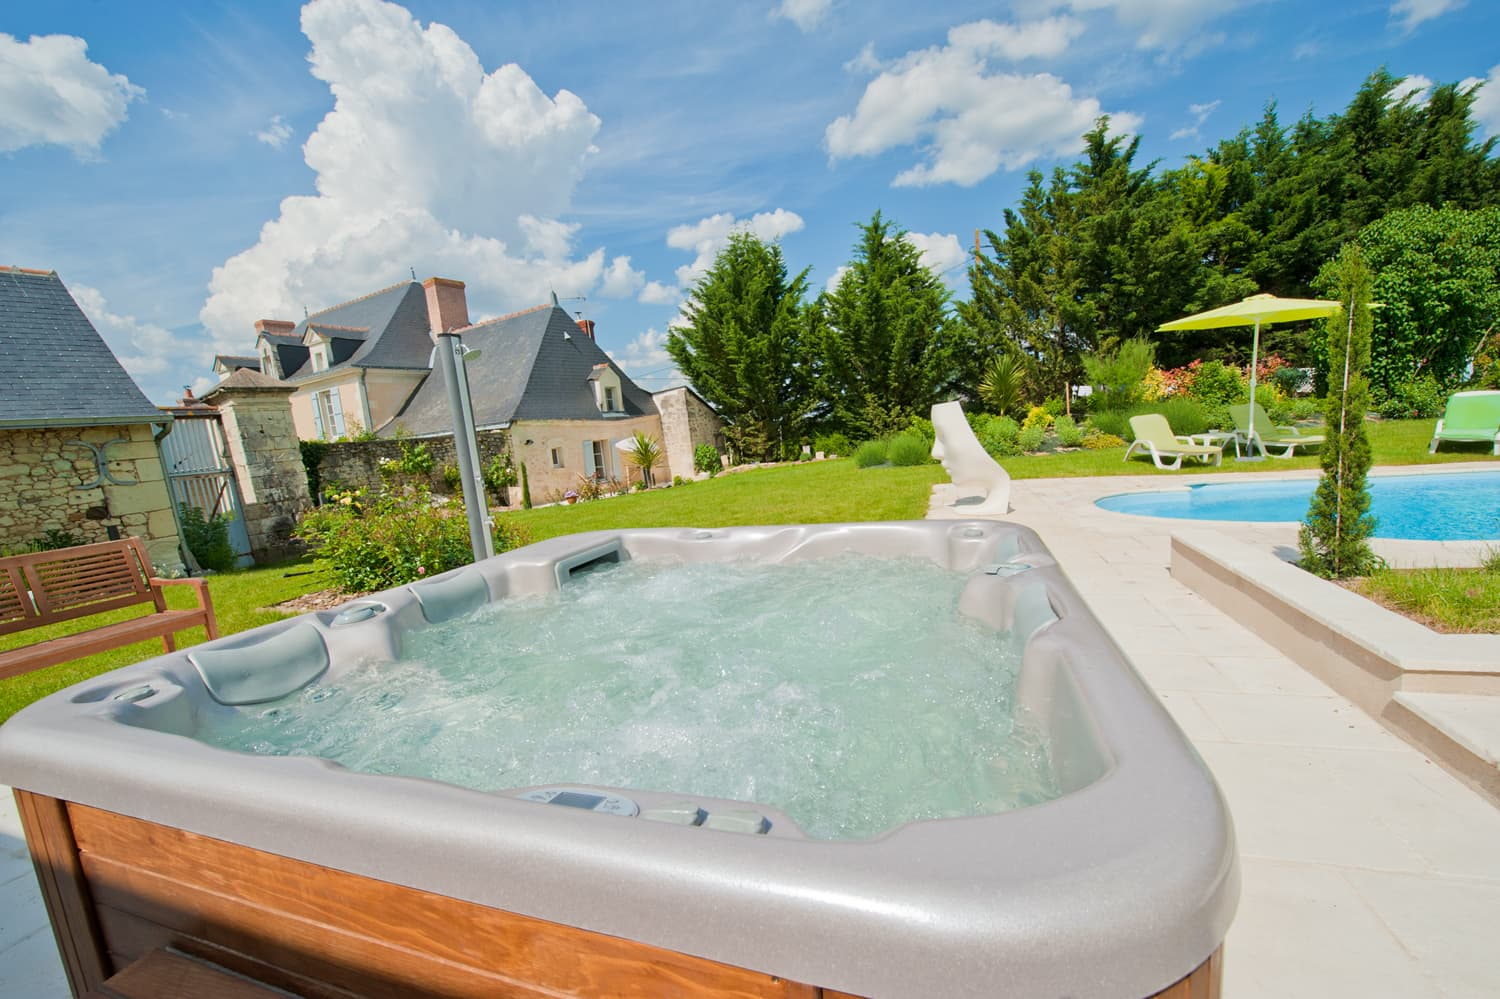 Hot-tub and shared, heated pool with terrace